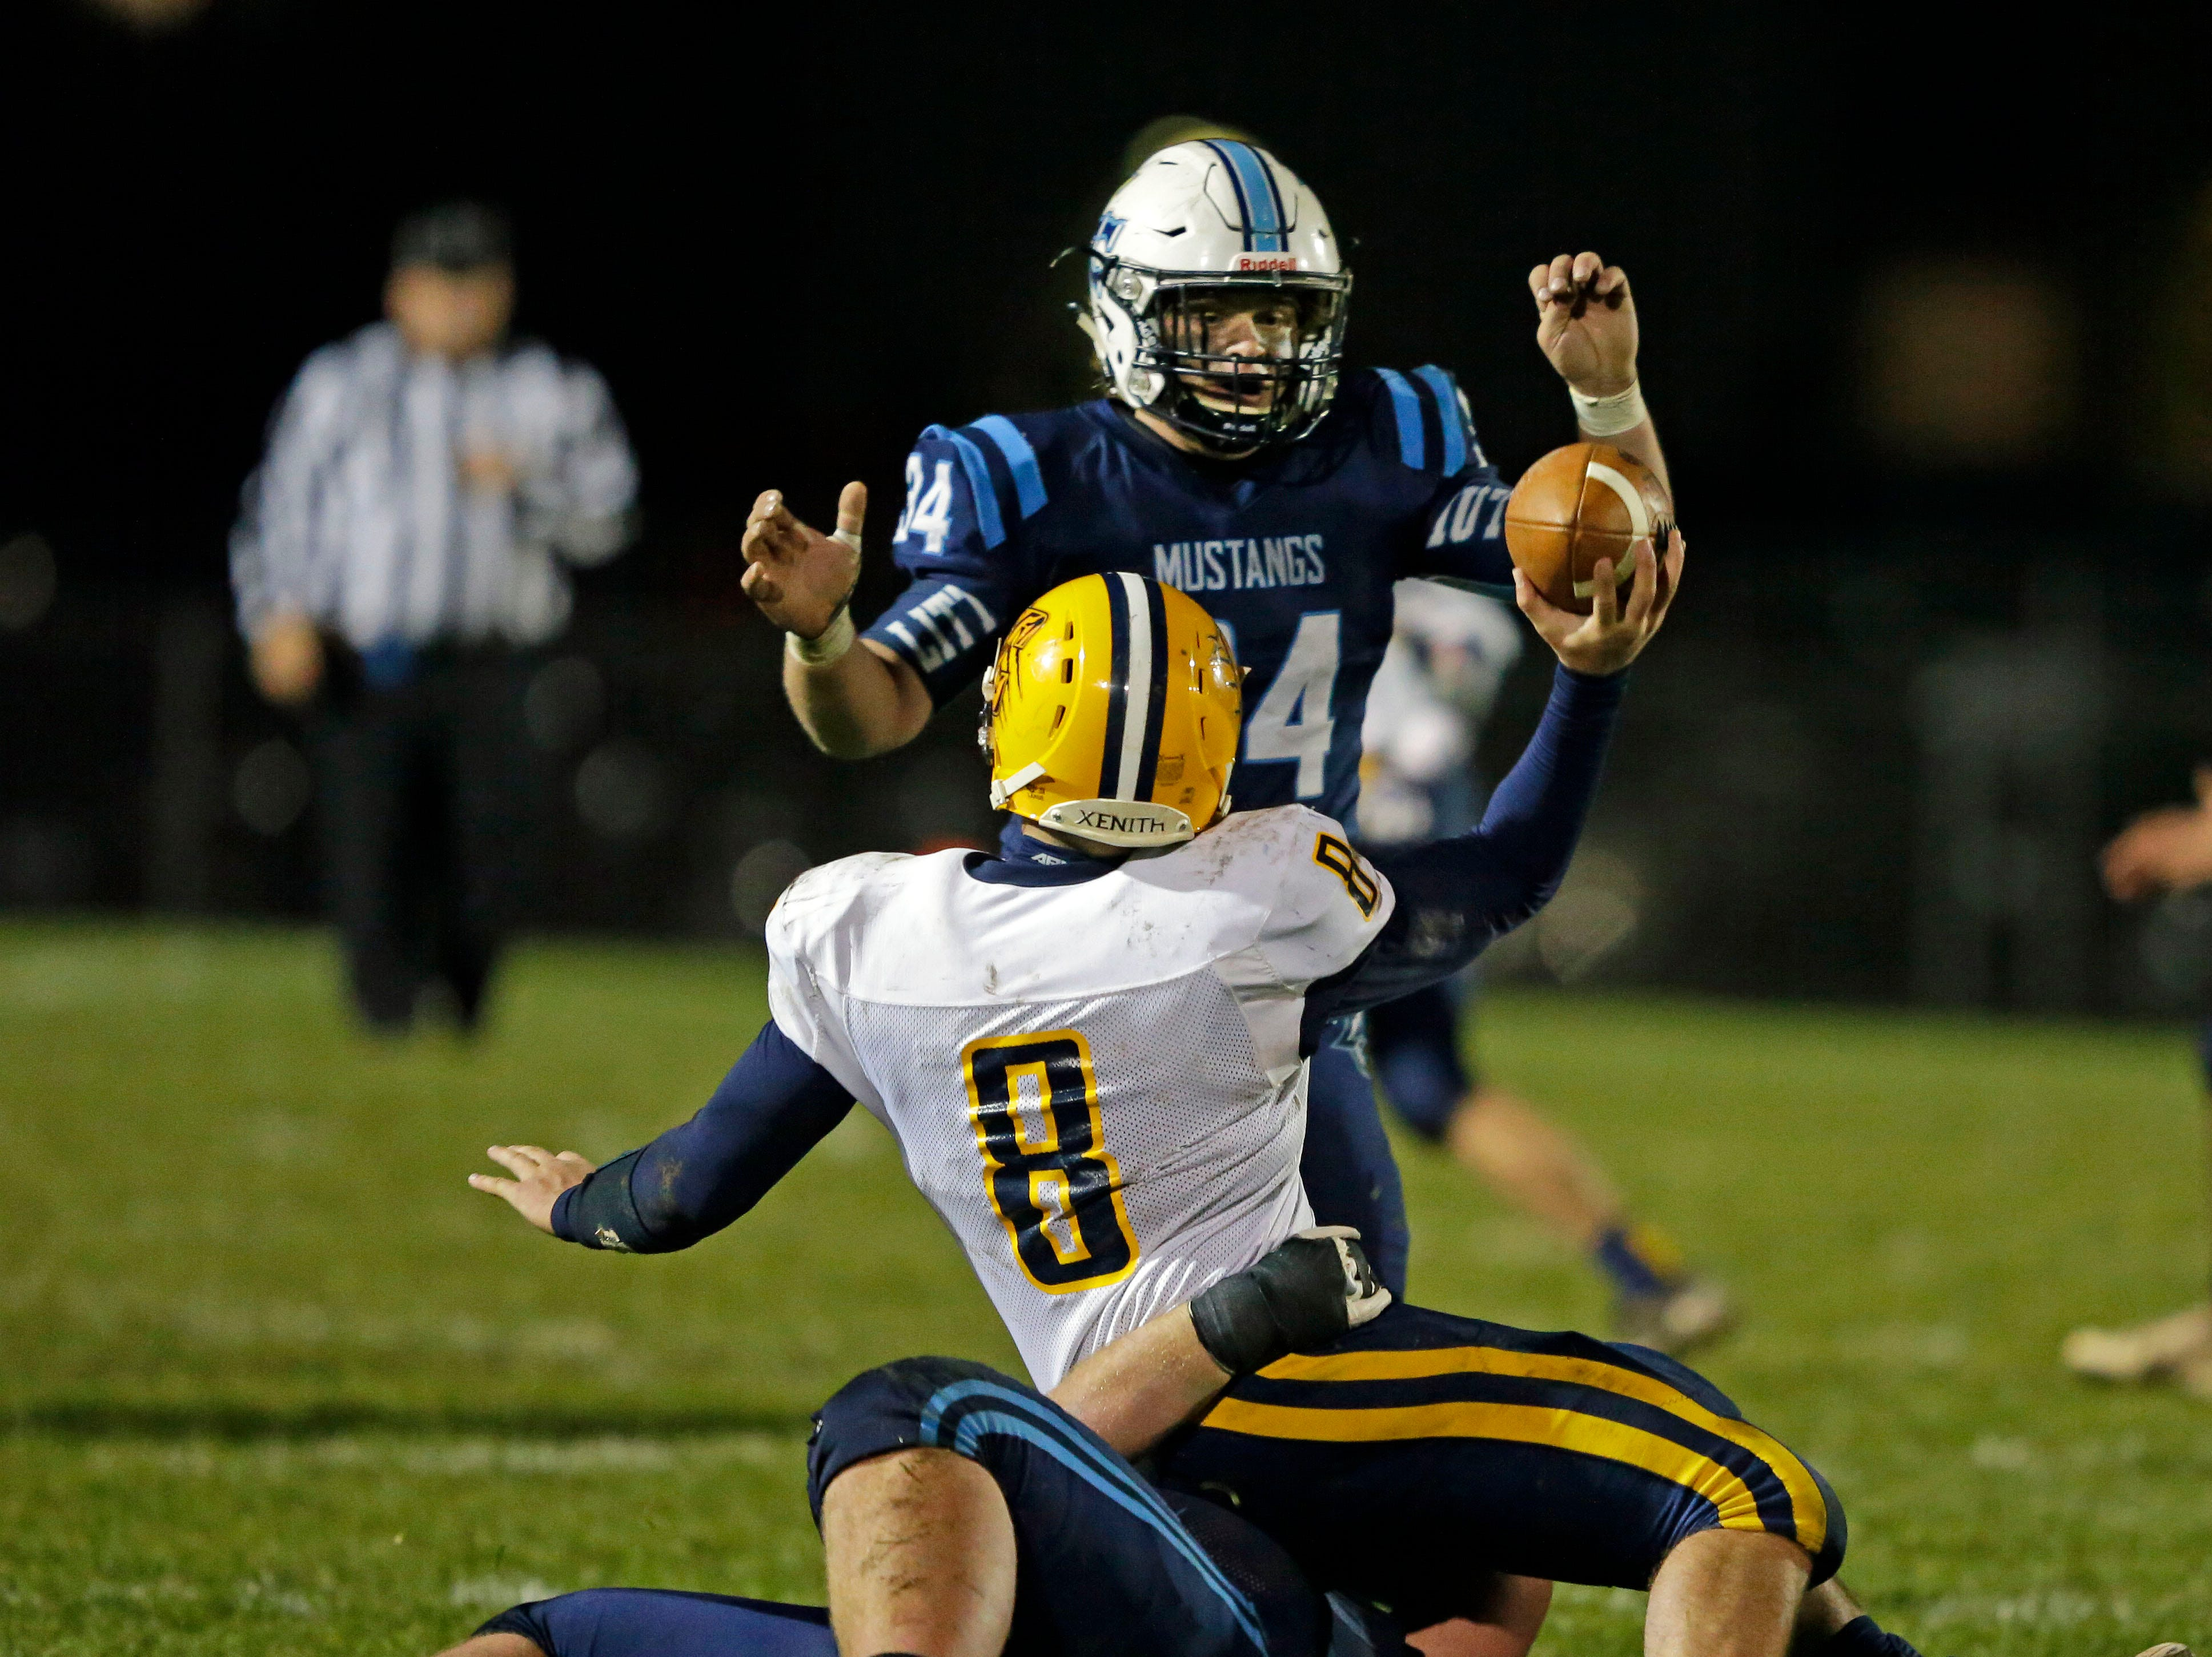 Nate Hietpas of Little Chute tackles Chilton quarterback Jake Criter as he tries to get a pass away in a WIAA Division 4 second round football playoff game Friday, October 26, 2018, at Little Chute High School in Little Chute, Wis.Ron Page/USA TODAY NETWORK-Wisconsin